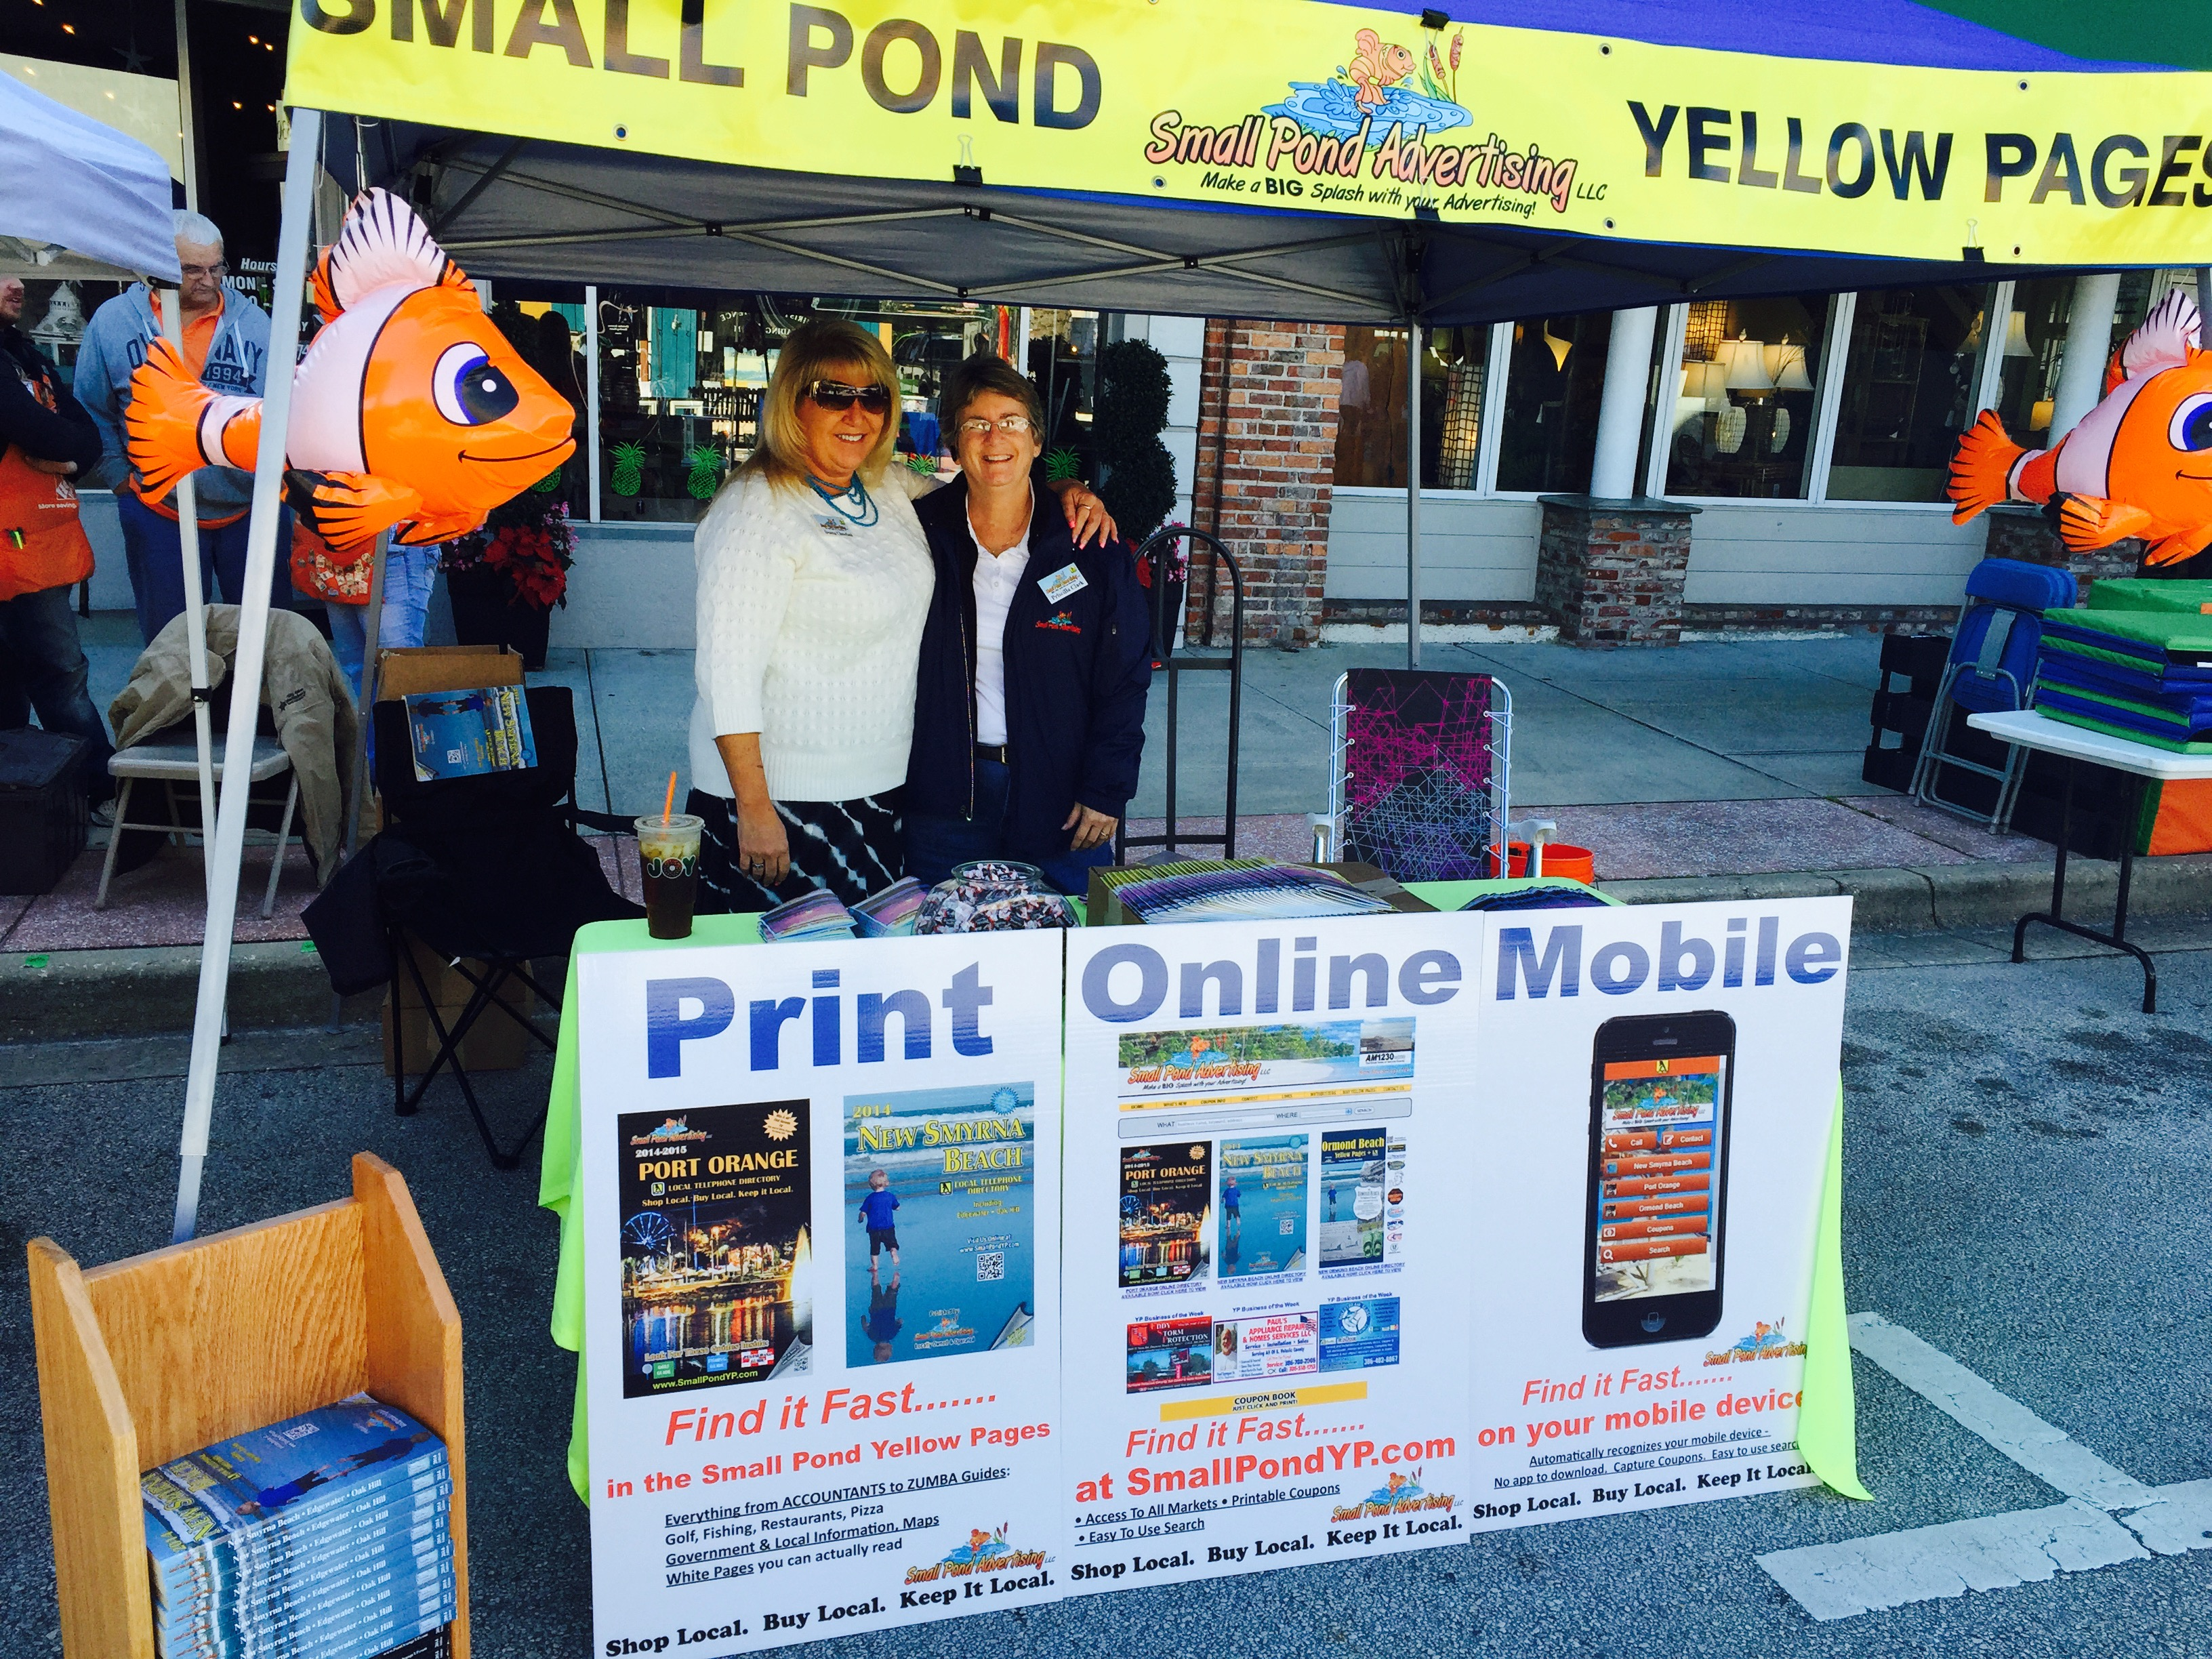 Small pond advertising shop local buy local keep it local for Local pond stores